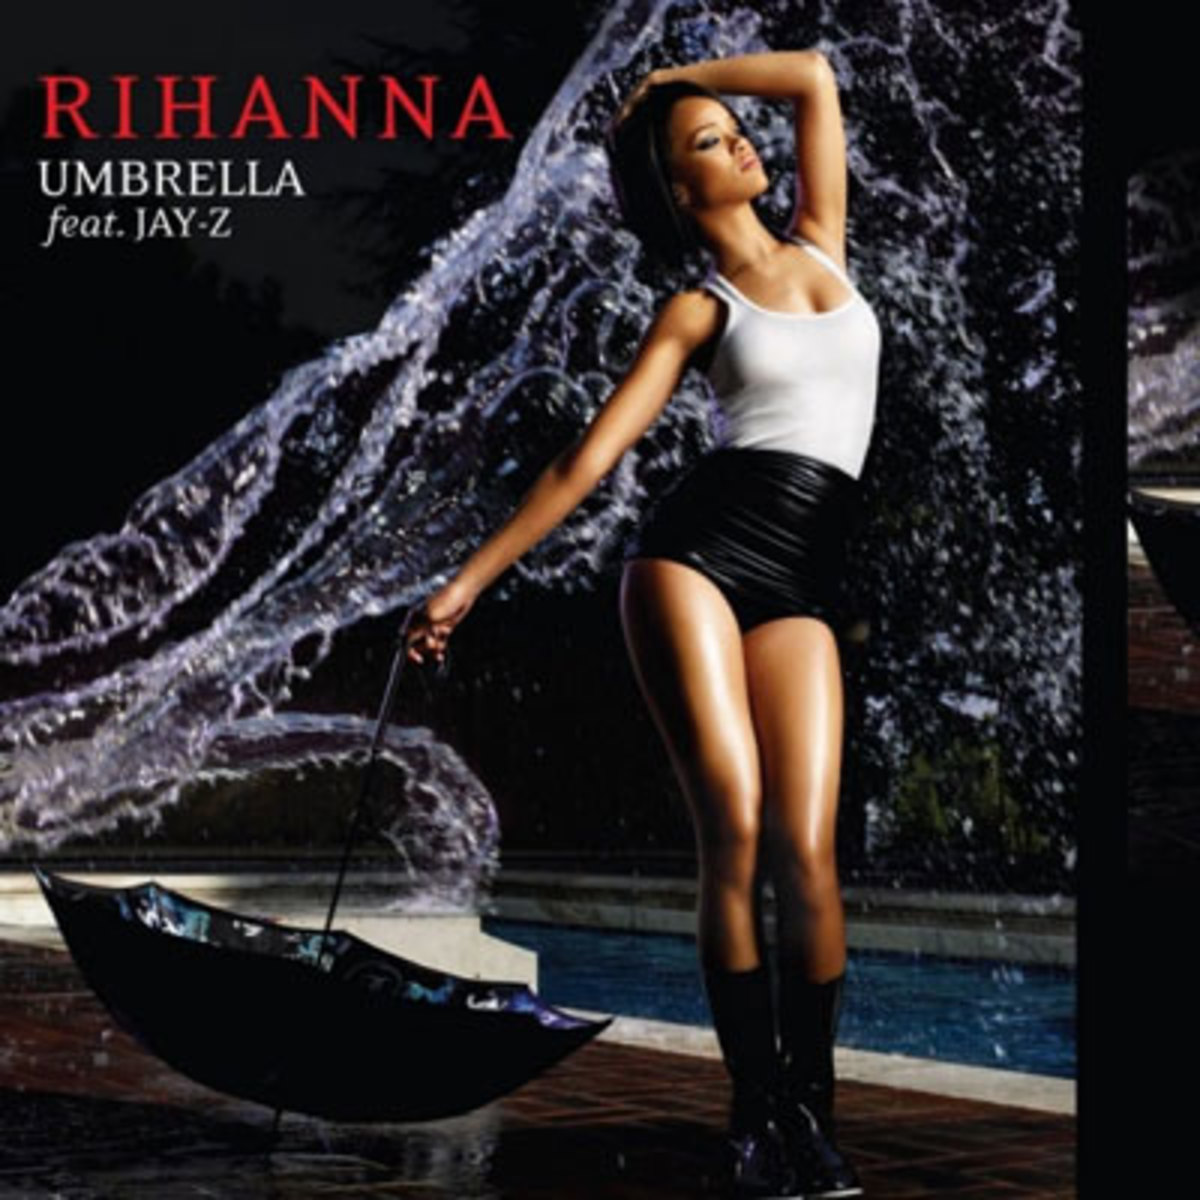 rihanna-umbrella.jpg